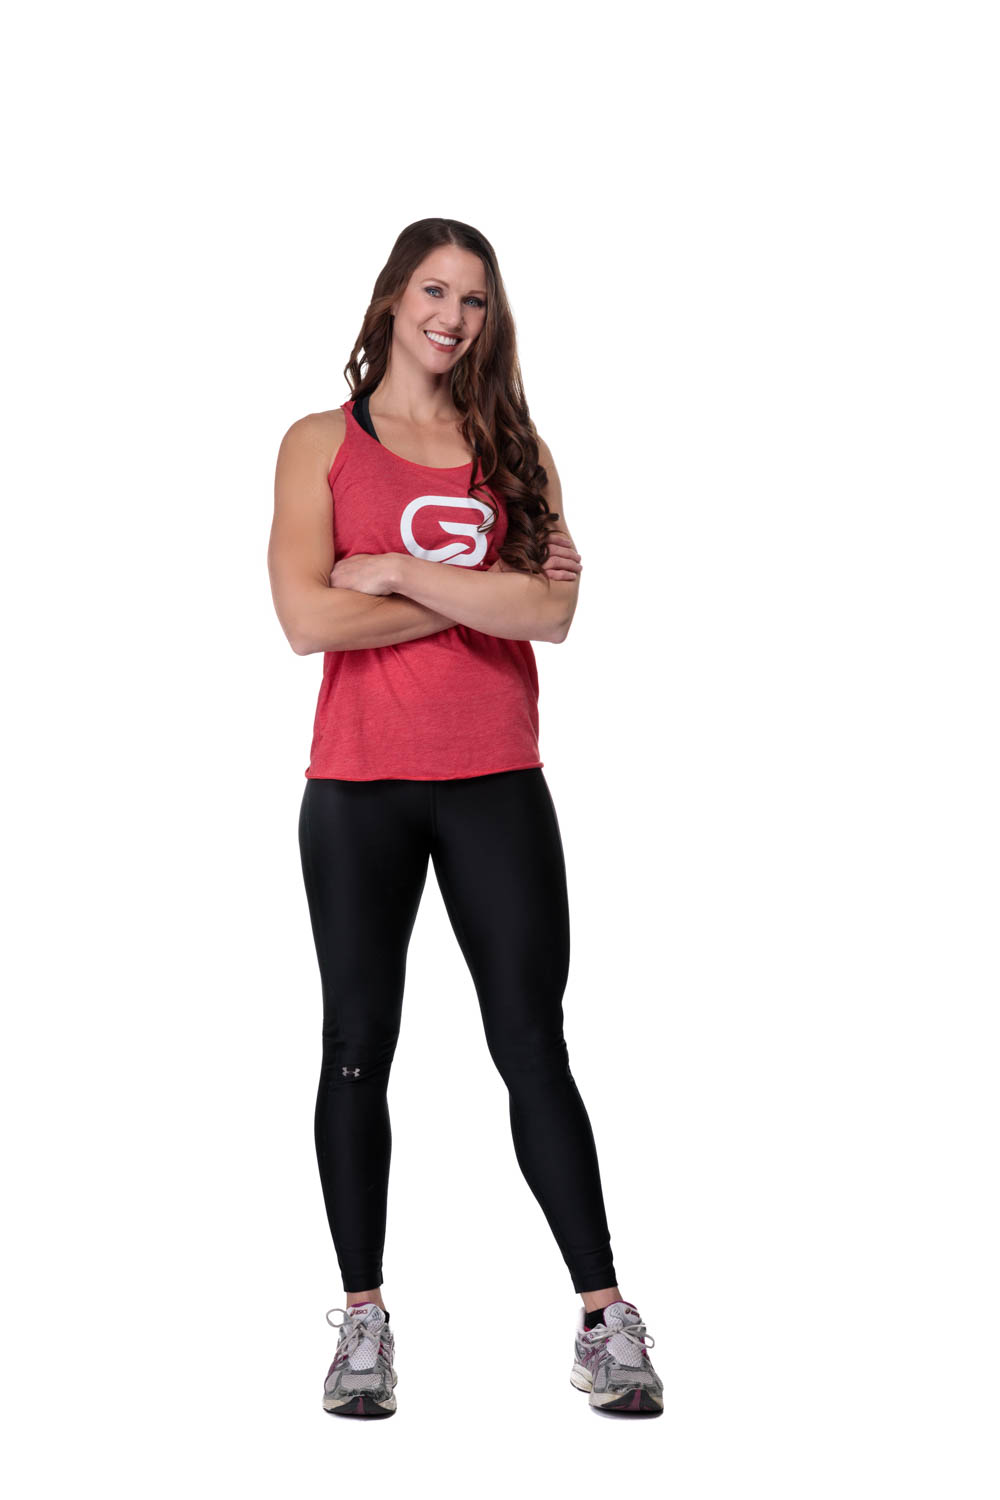 CycleBar Trainer on white seamless background